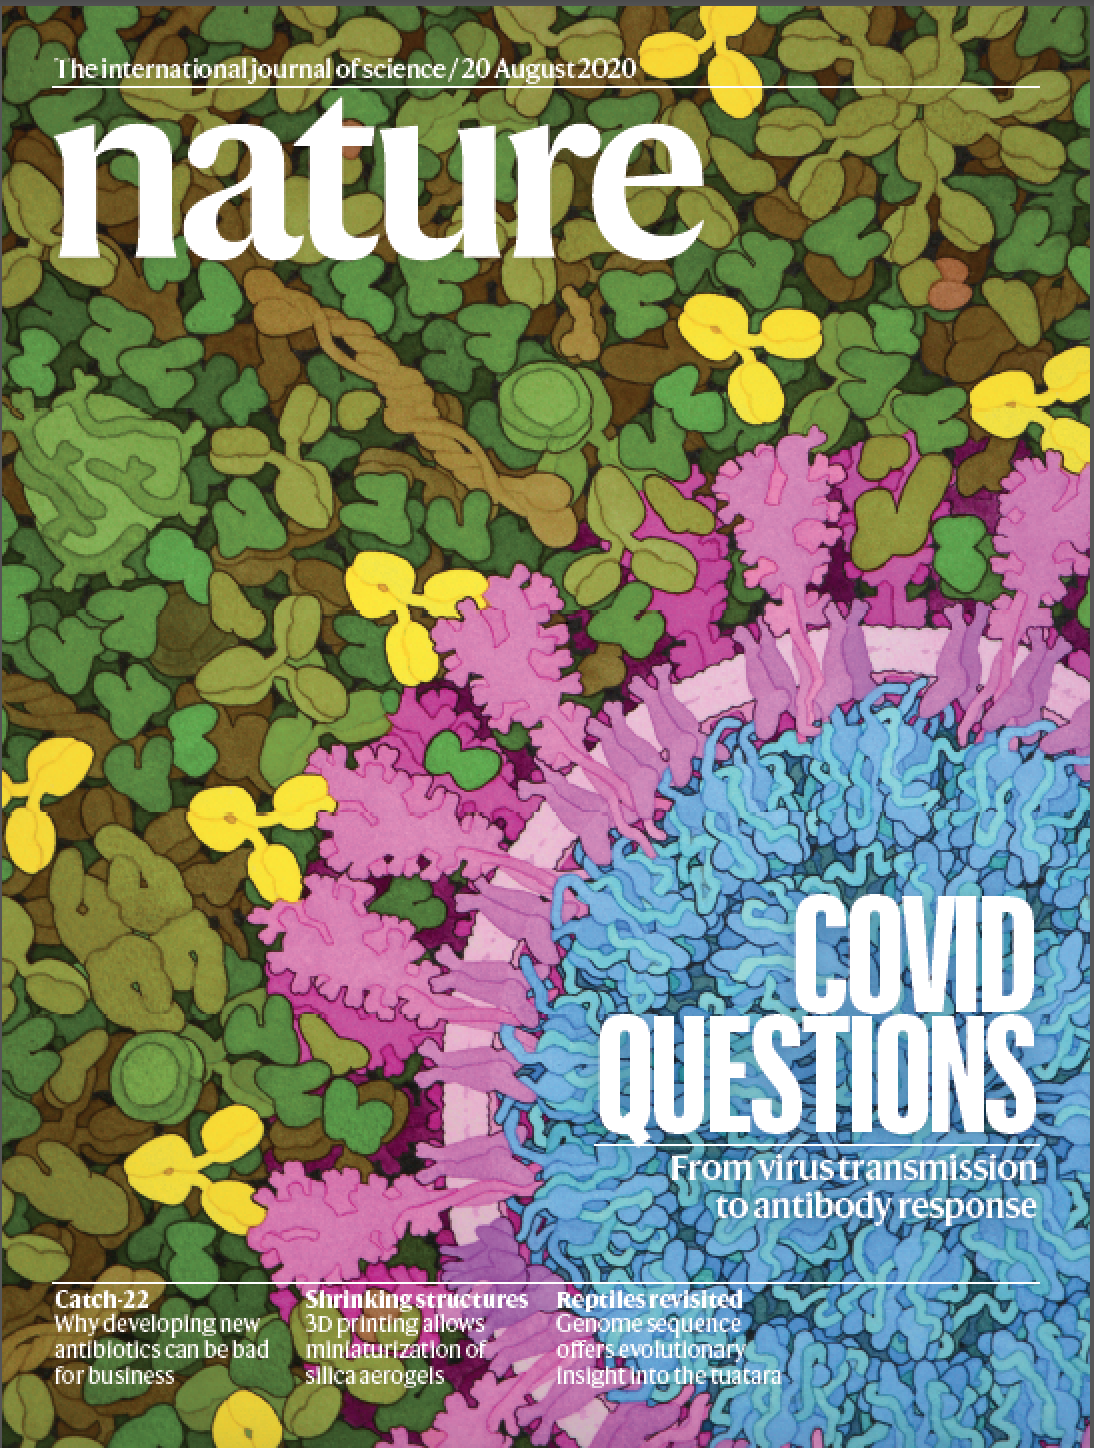 "<a href=""https://www.nature.com/nature/volumes/584/issues/7821"">Volume 584 Issue 7821, 20 August 2020</a>"